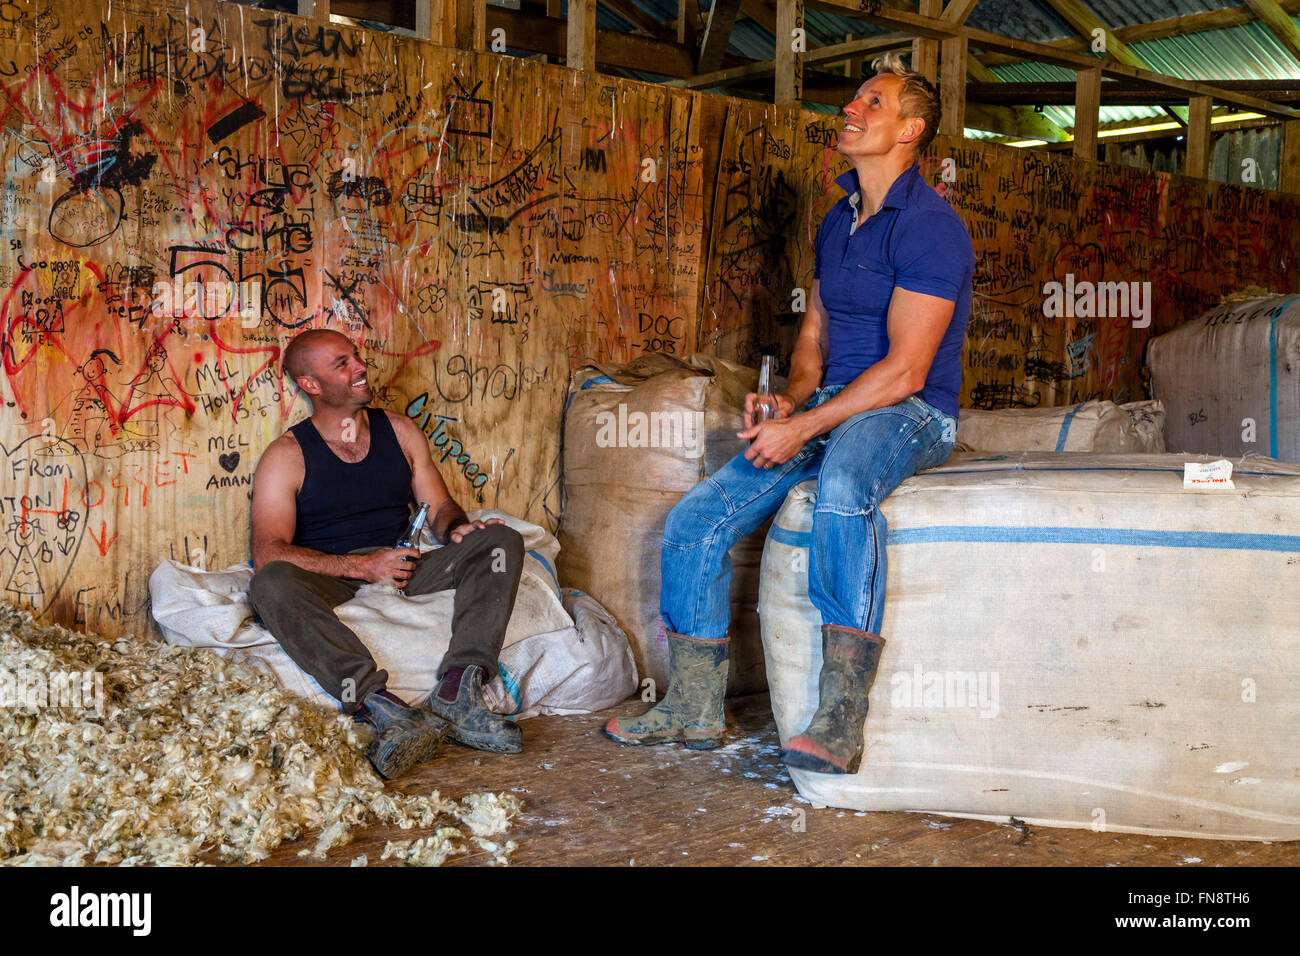 Two Sheep Farmers Relax In The Wool Shed After A Morning Spent Shearing Sheep, Sheep Farm, Pukekohe, North Island, - Stock Image